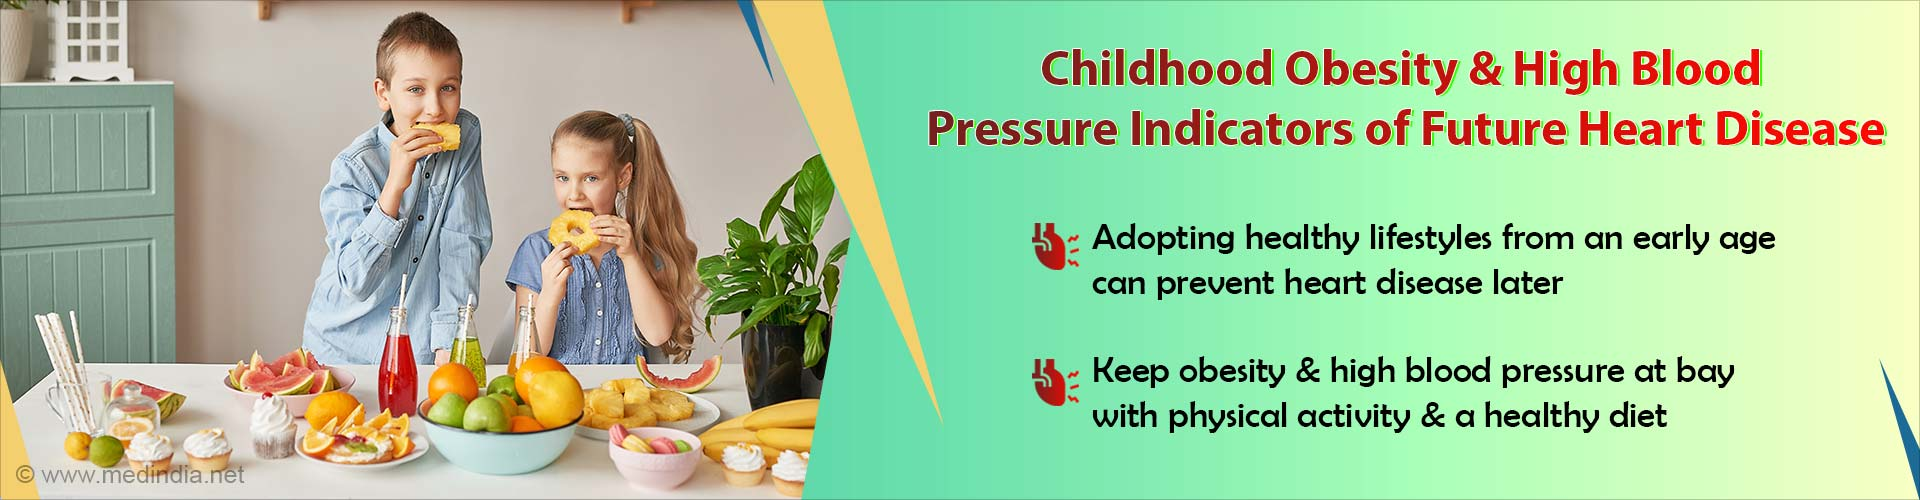 Childhood Obesity and High Blood Pressure can Lead to Future Heart Disease